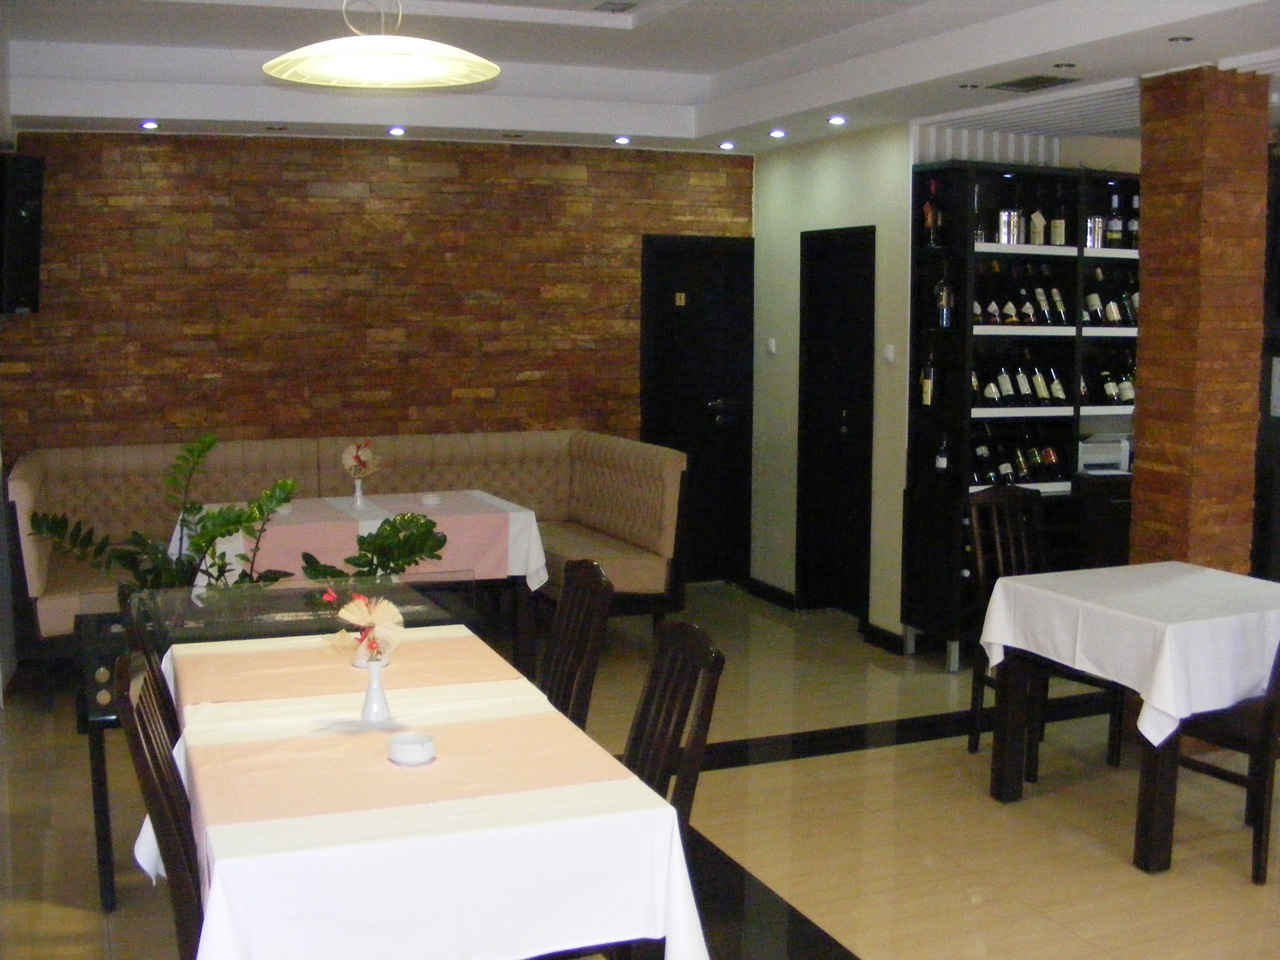 TAVERN KOD PAUNA Restaurants Loznica - Photo 5